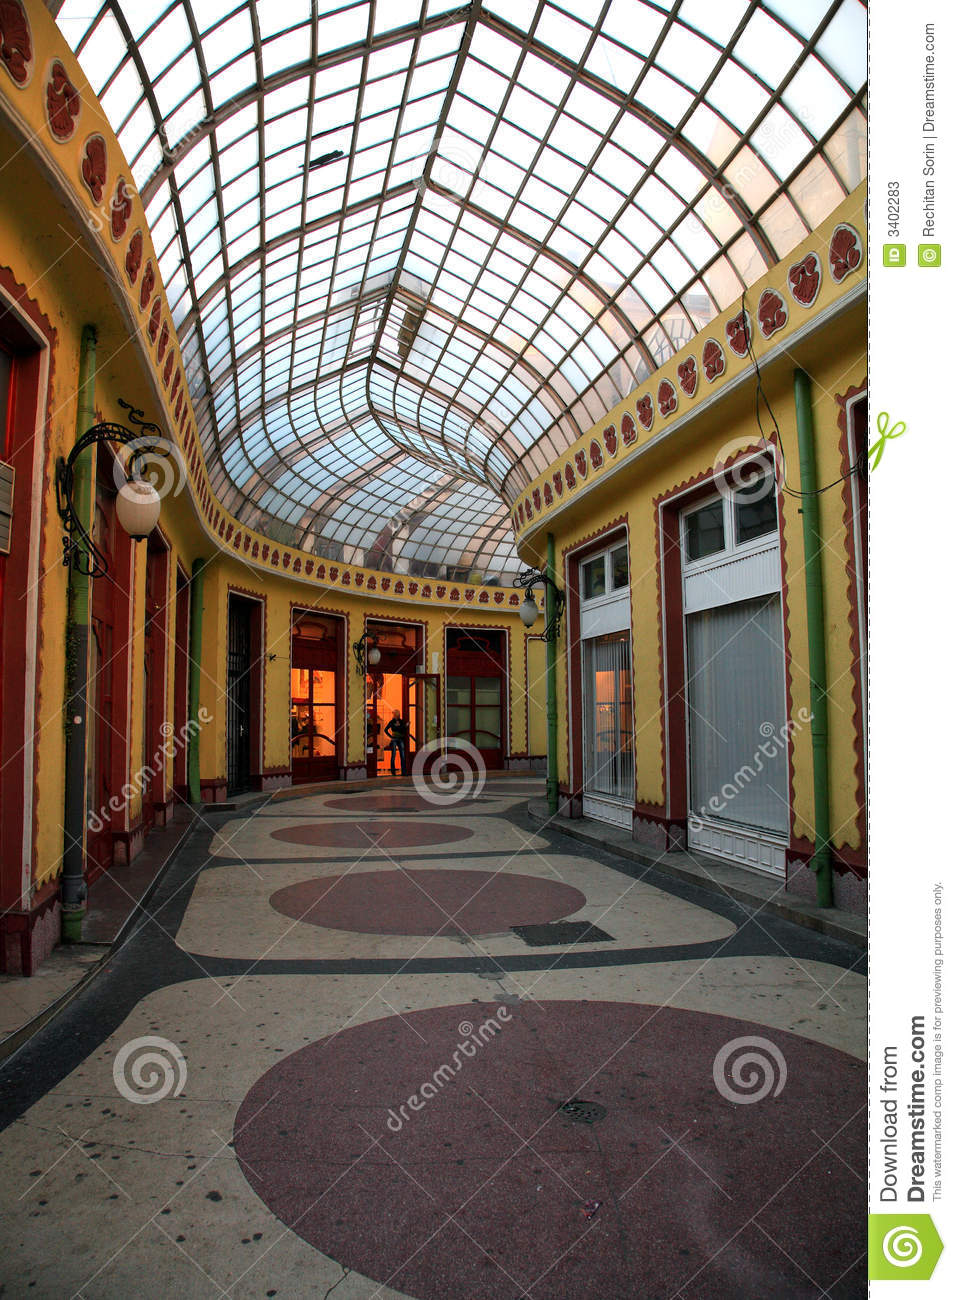 Commercial gallery stock image image of buiding - Galeria comercial ...